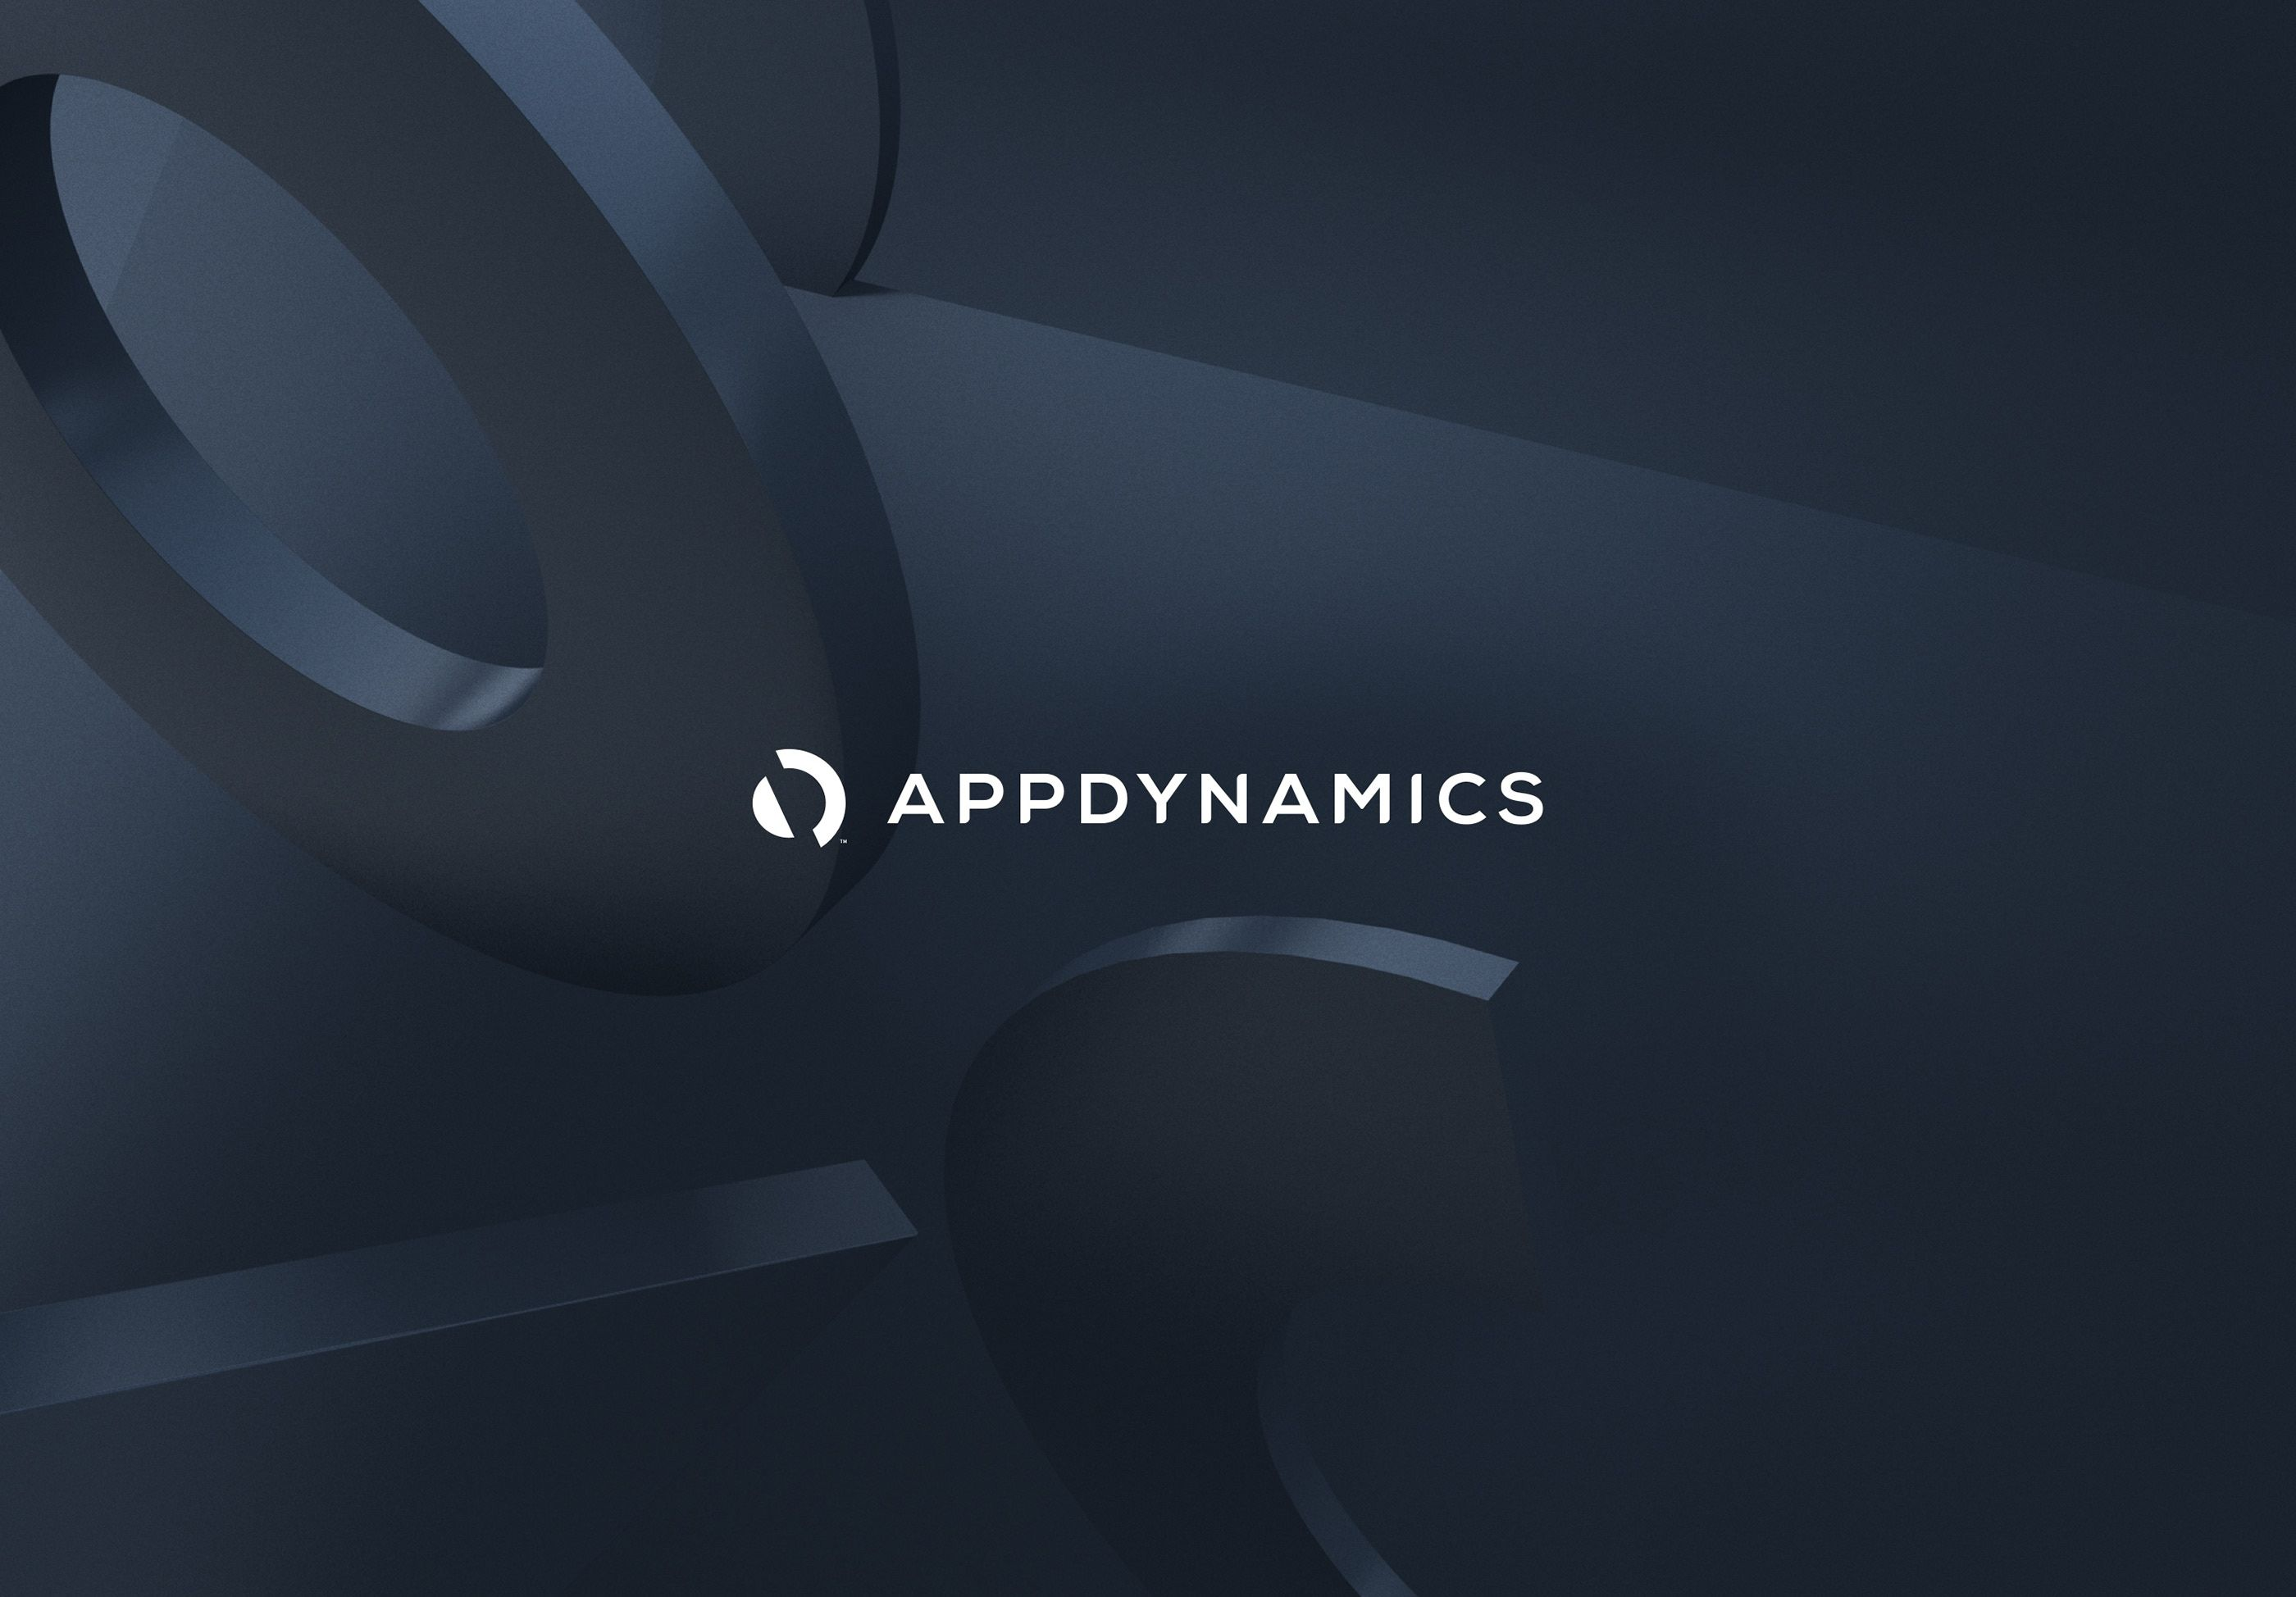 Cisco Bought AppDynamics, Wider Application Intelligence